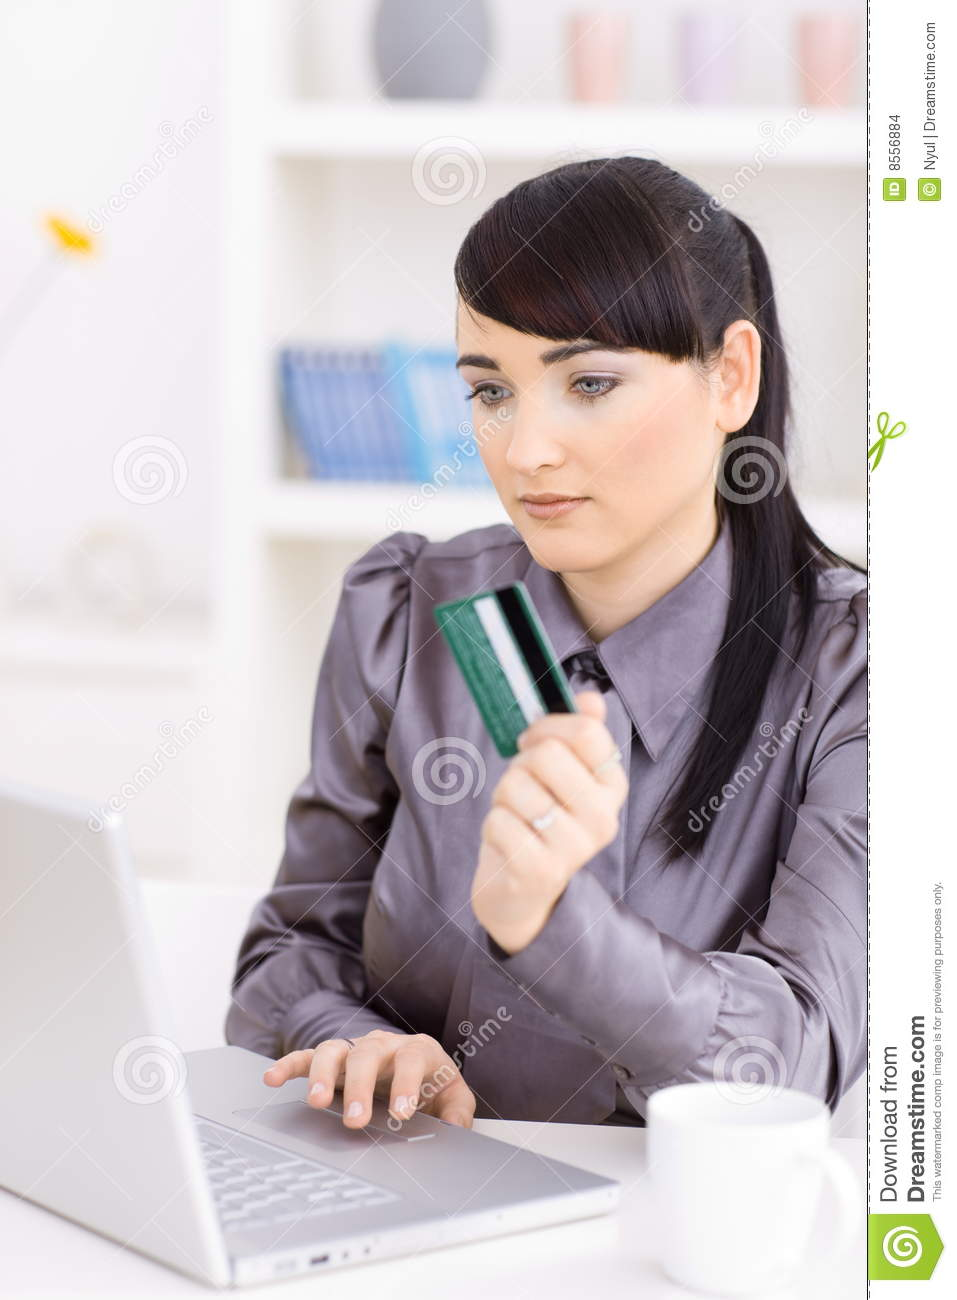 Woman Shopping Online Stock Images - Image: 8556884